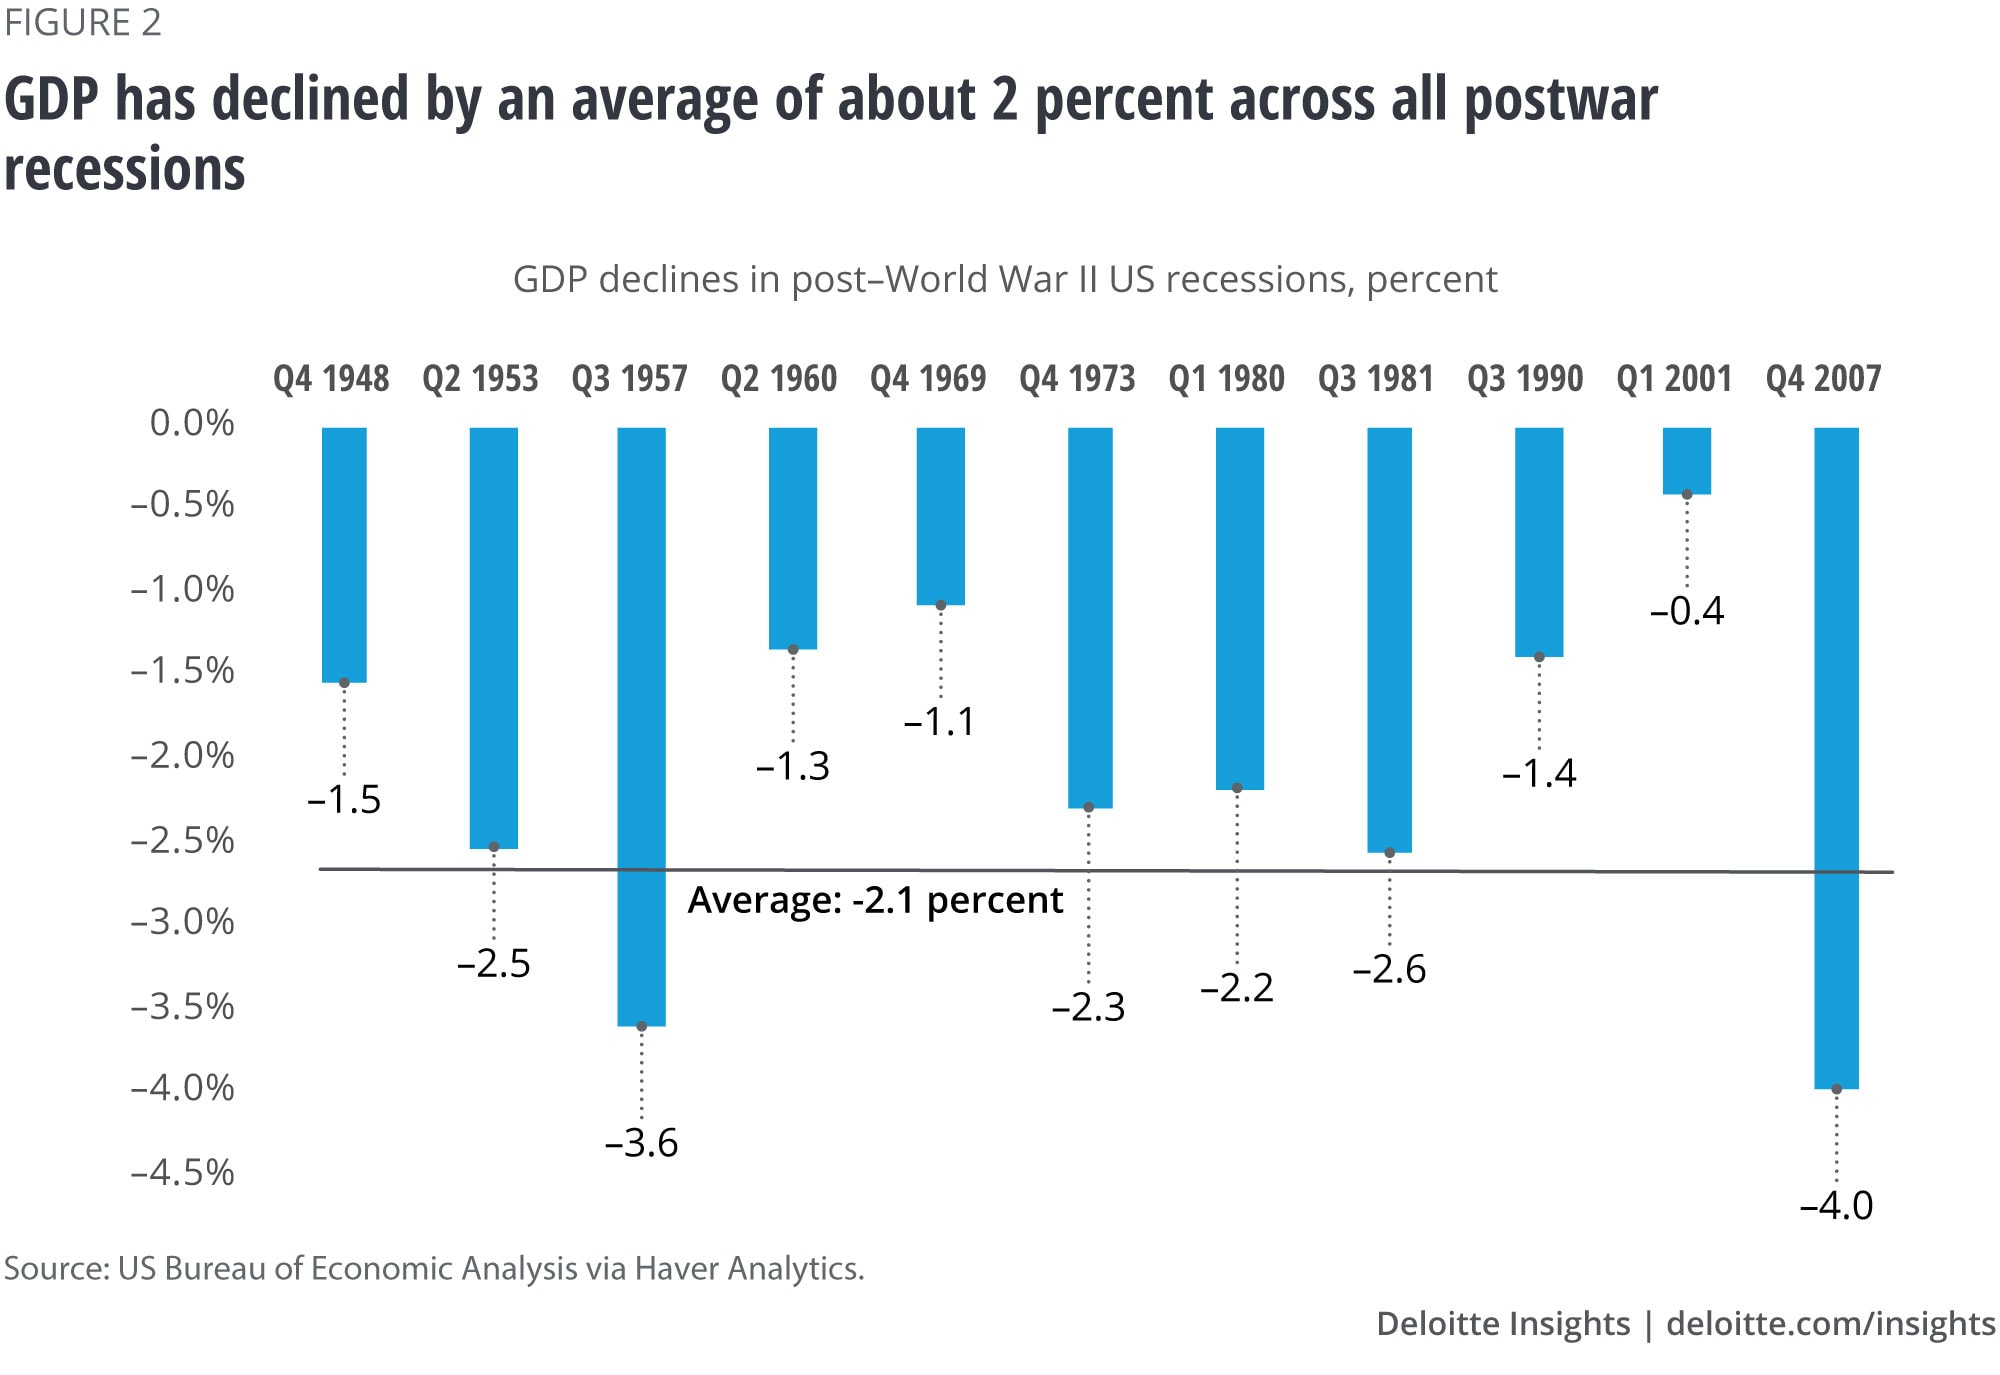 GDP has declined by an average of about 2 percent across all postwar recessions